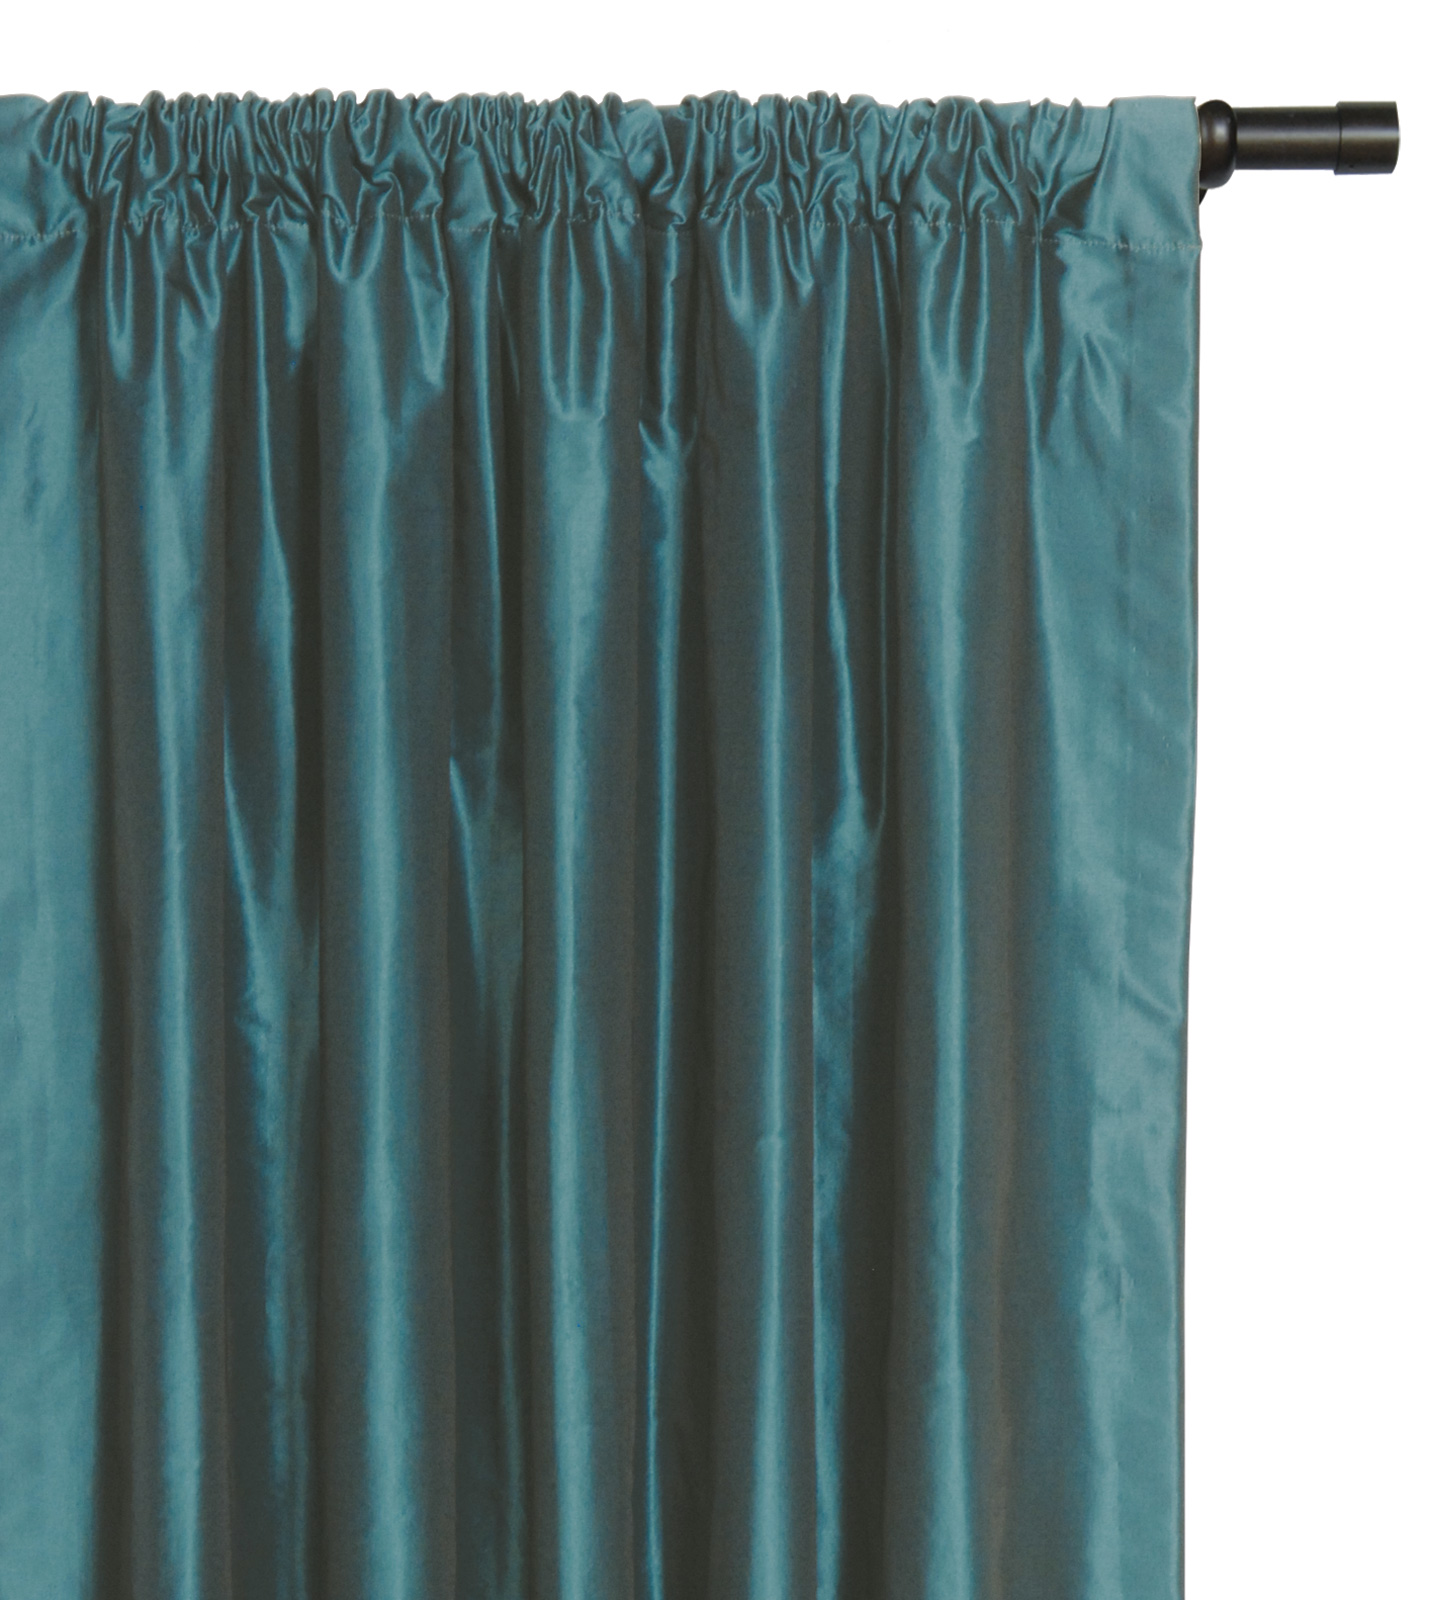 Luxury Bedding by Eastern Accents - FREDA TEAL CURTAIN PANEL